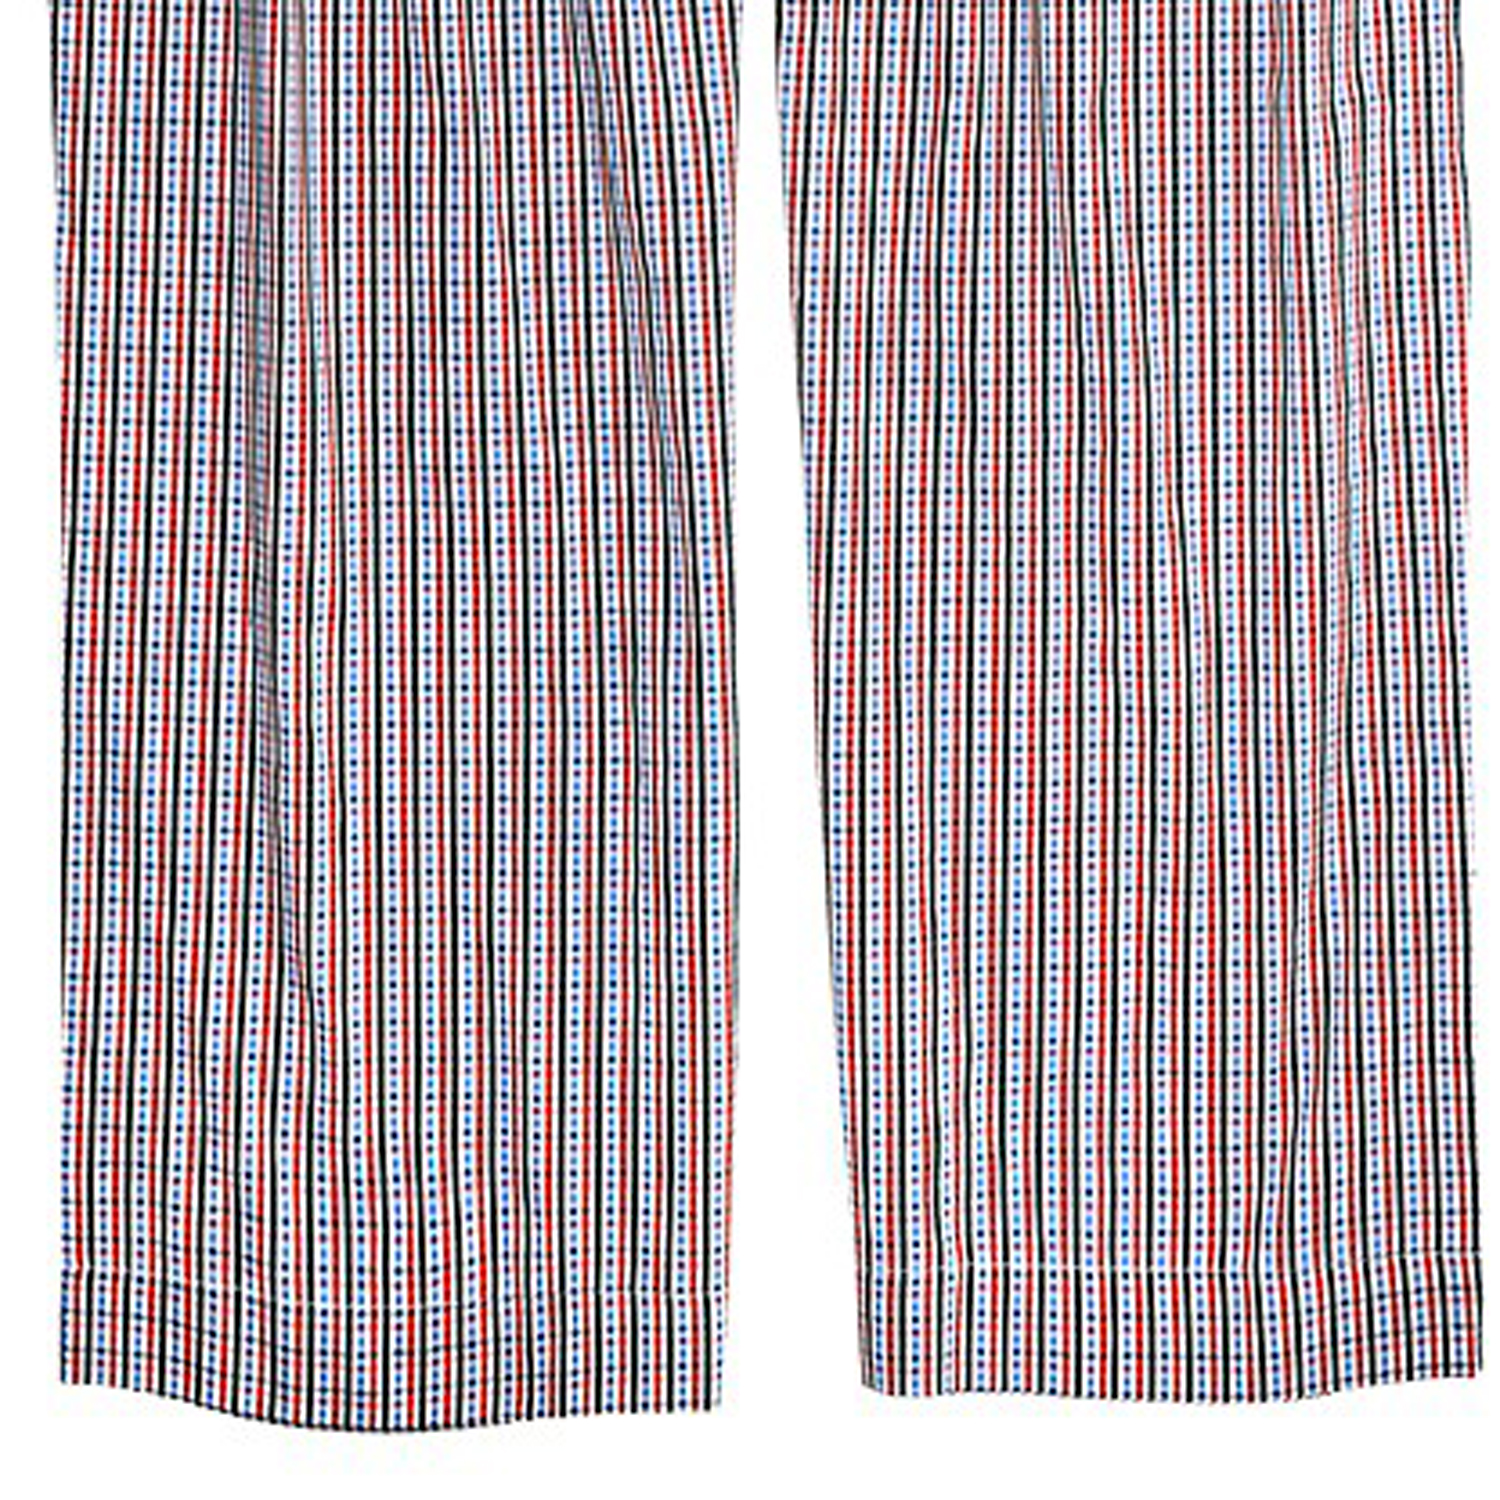 Detail Image to Pyjama for men by Jockey rouge checked in sizes up to 6XL